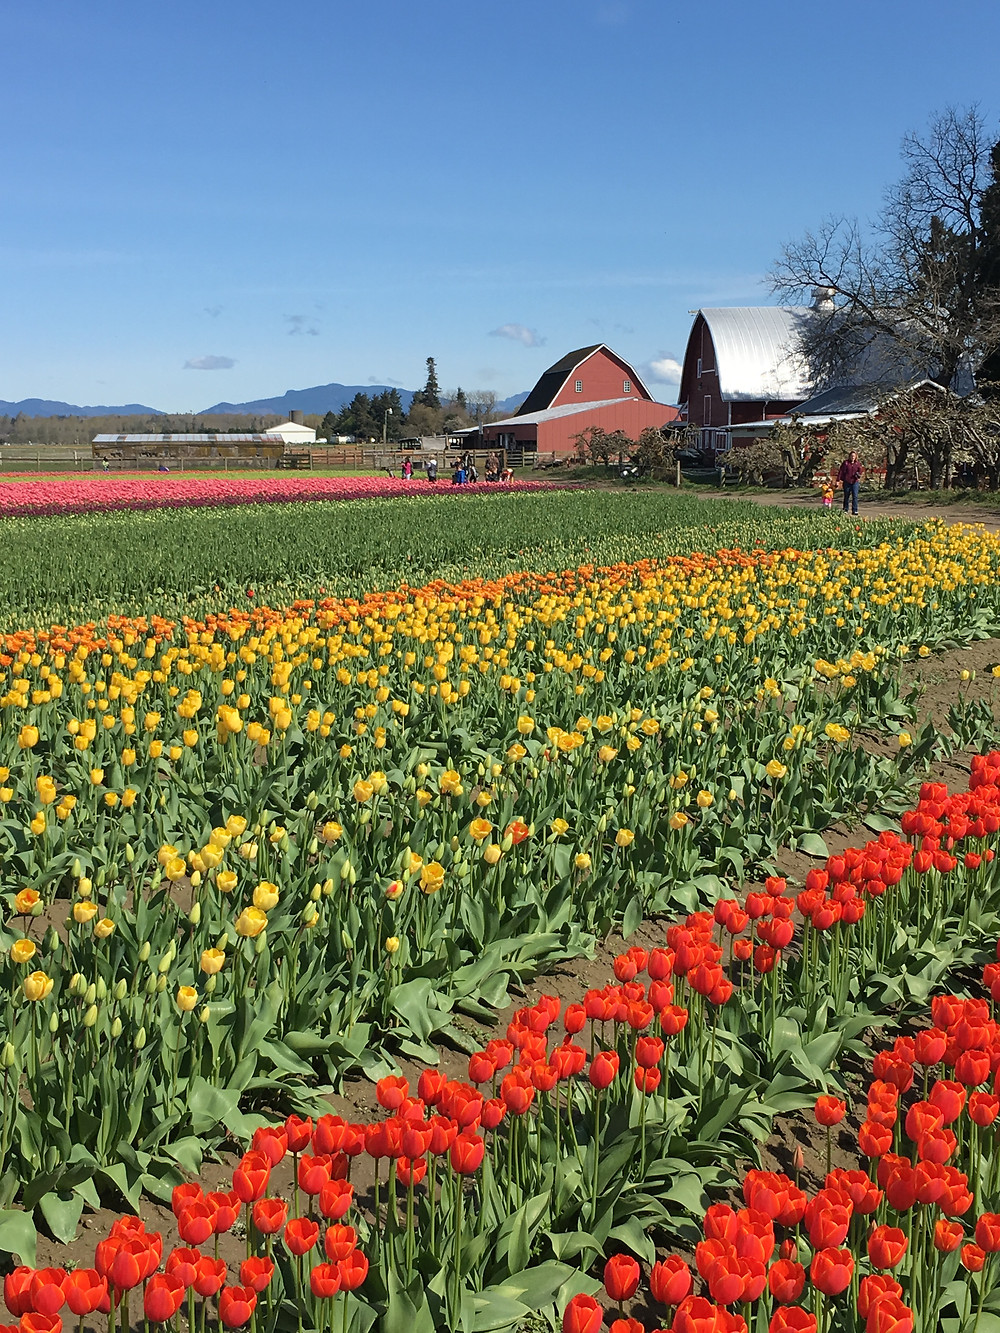 Skagit Valley Tulip Farm fields in bloom